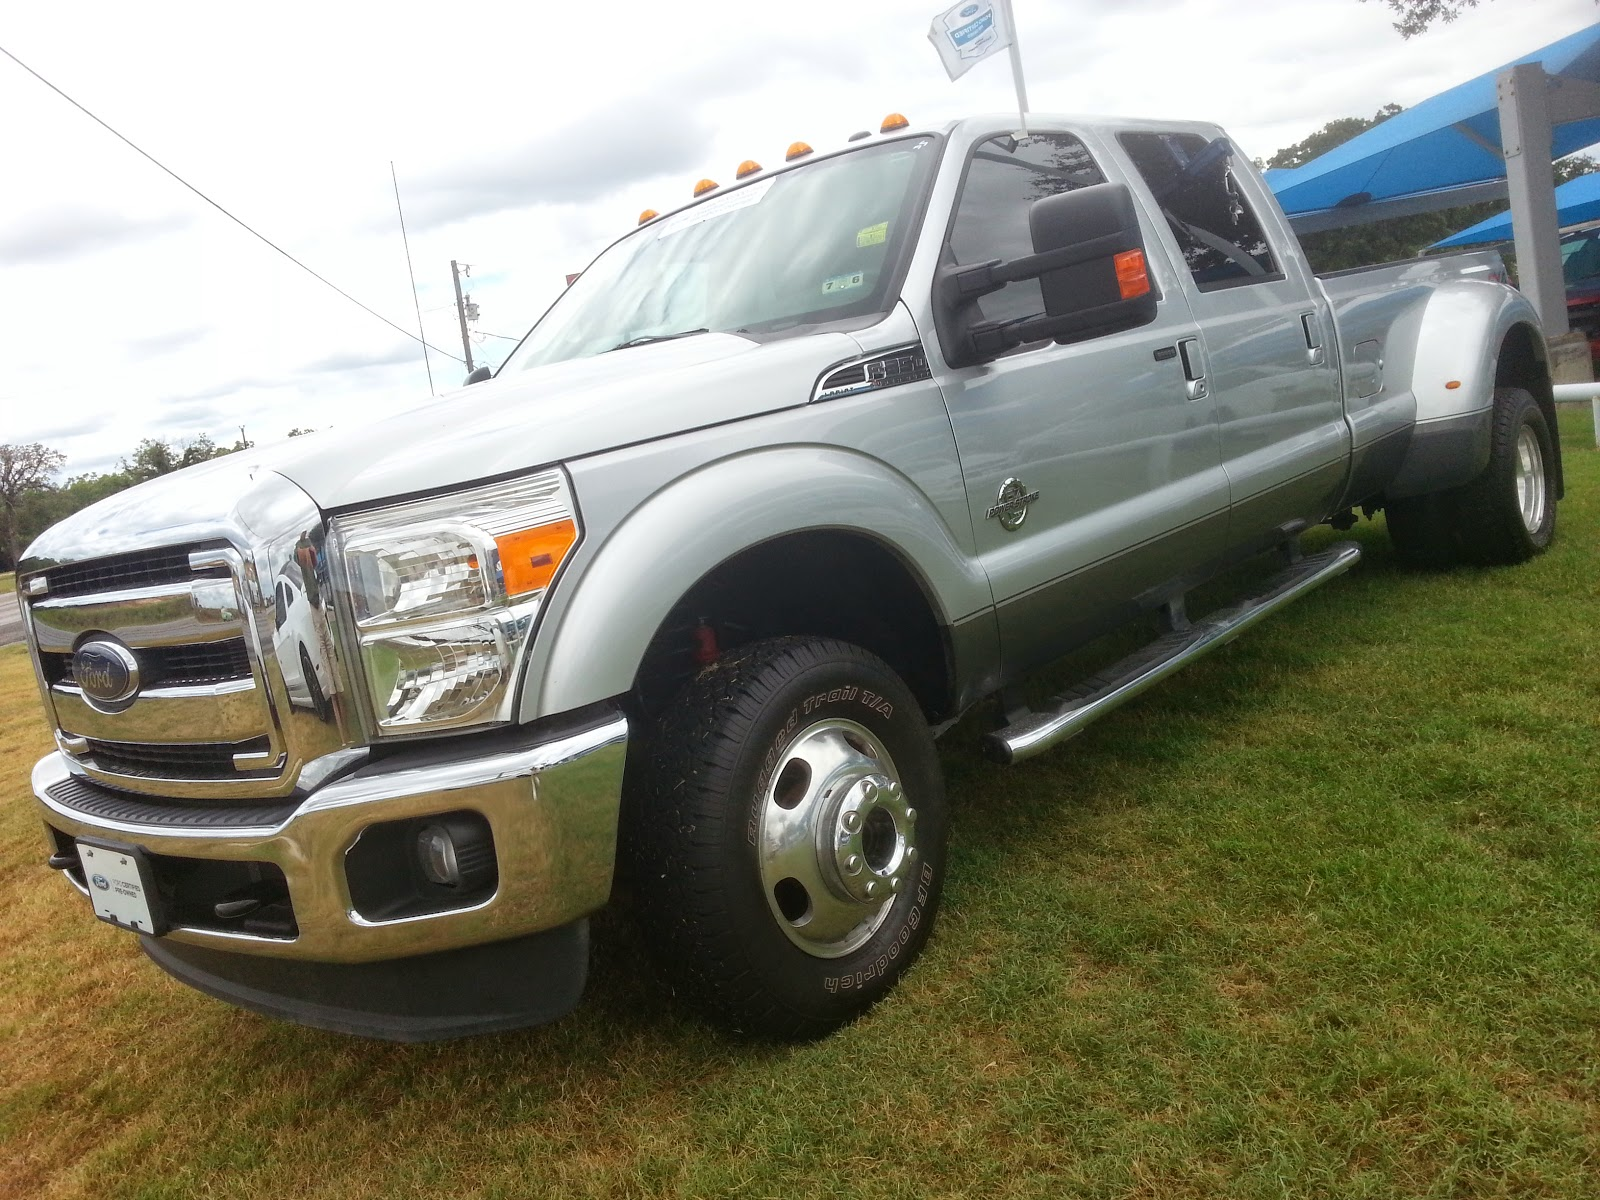 Pre owned for sale 45 995 silver 2013 ford f350 lariat fx4 power stroke diesel 4x4 w air lift